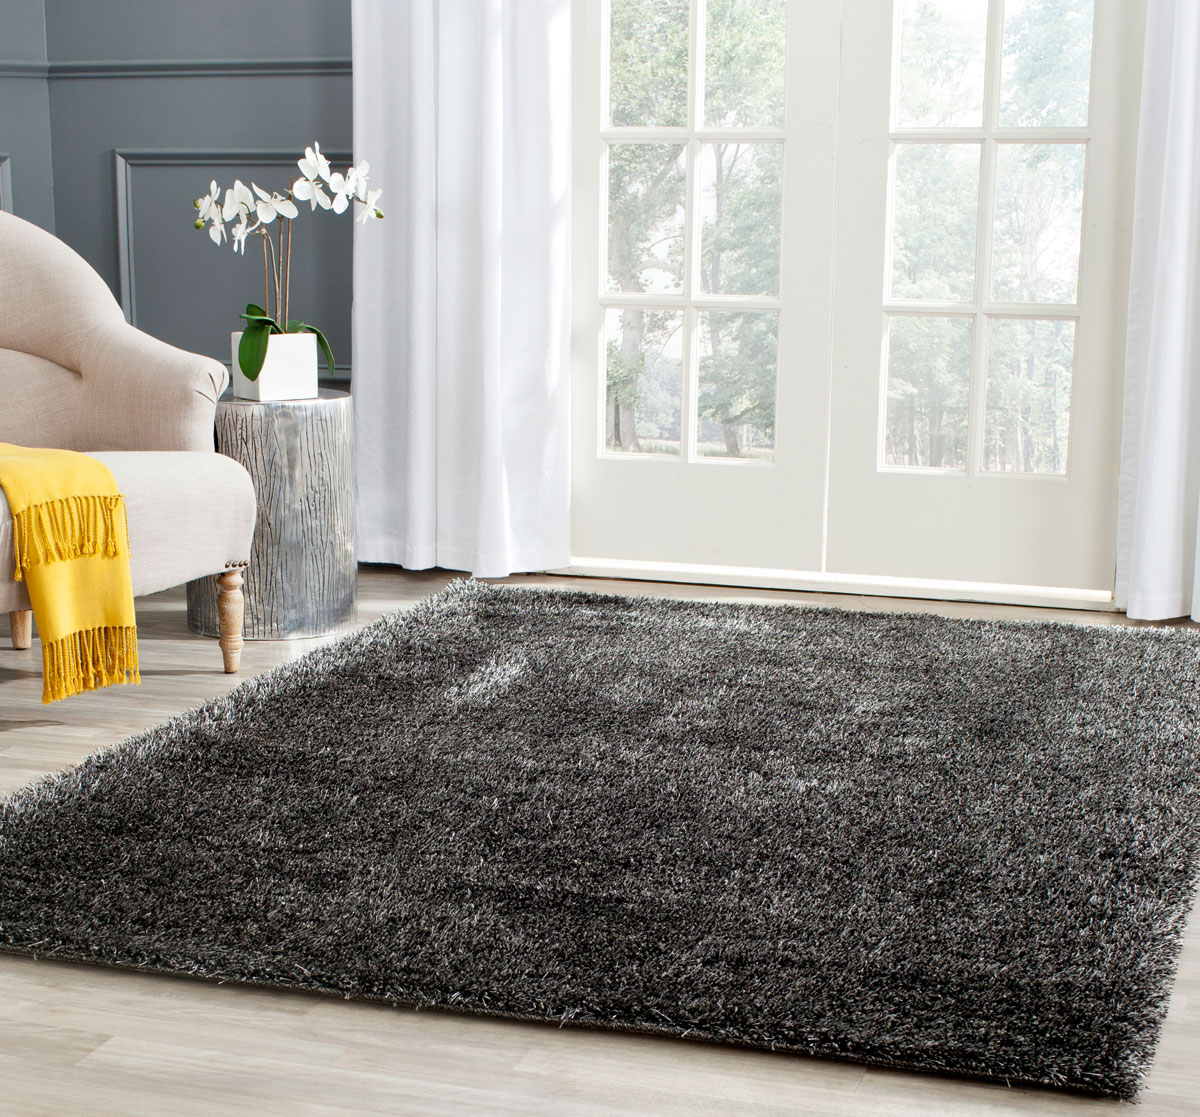 Black Plush Pile Shag | Charlotte Collection - Safavieh.com